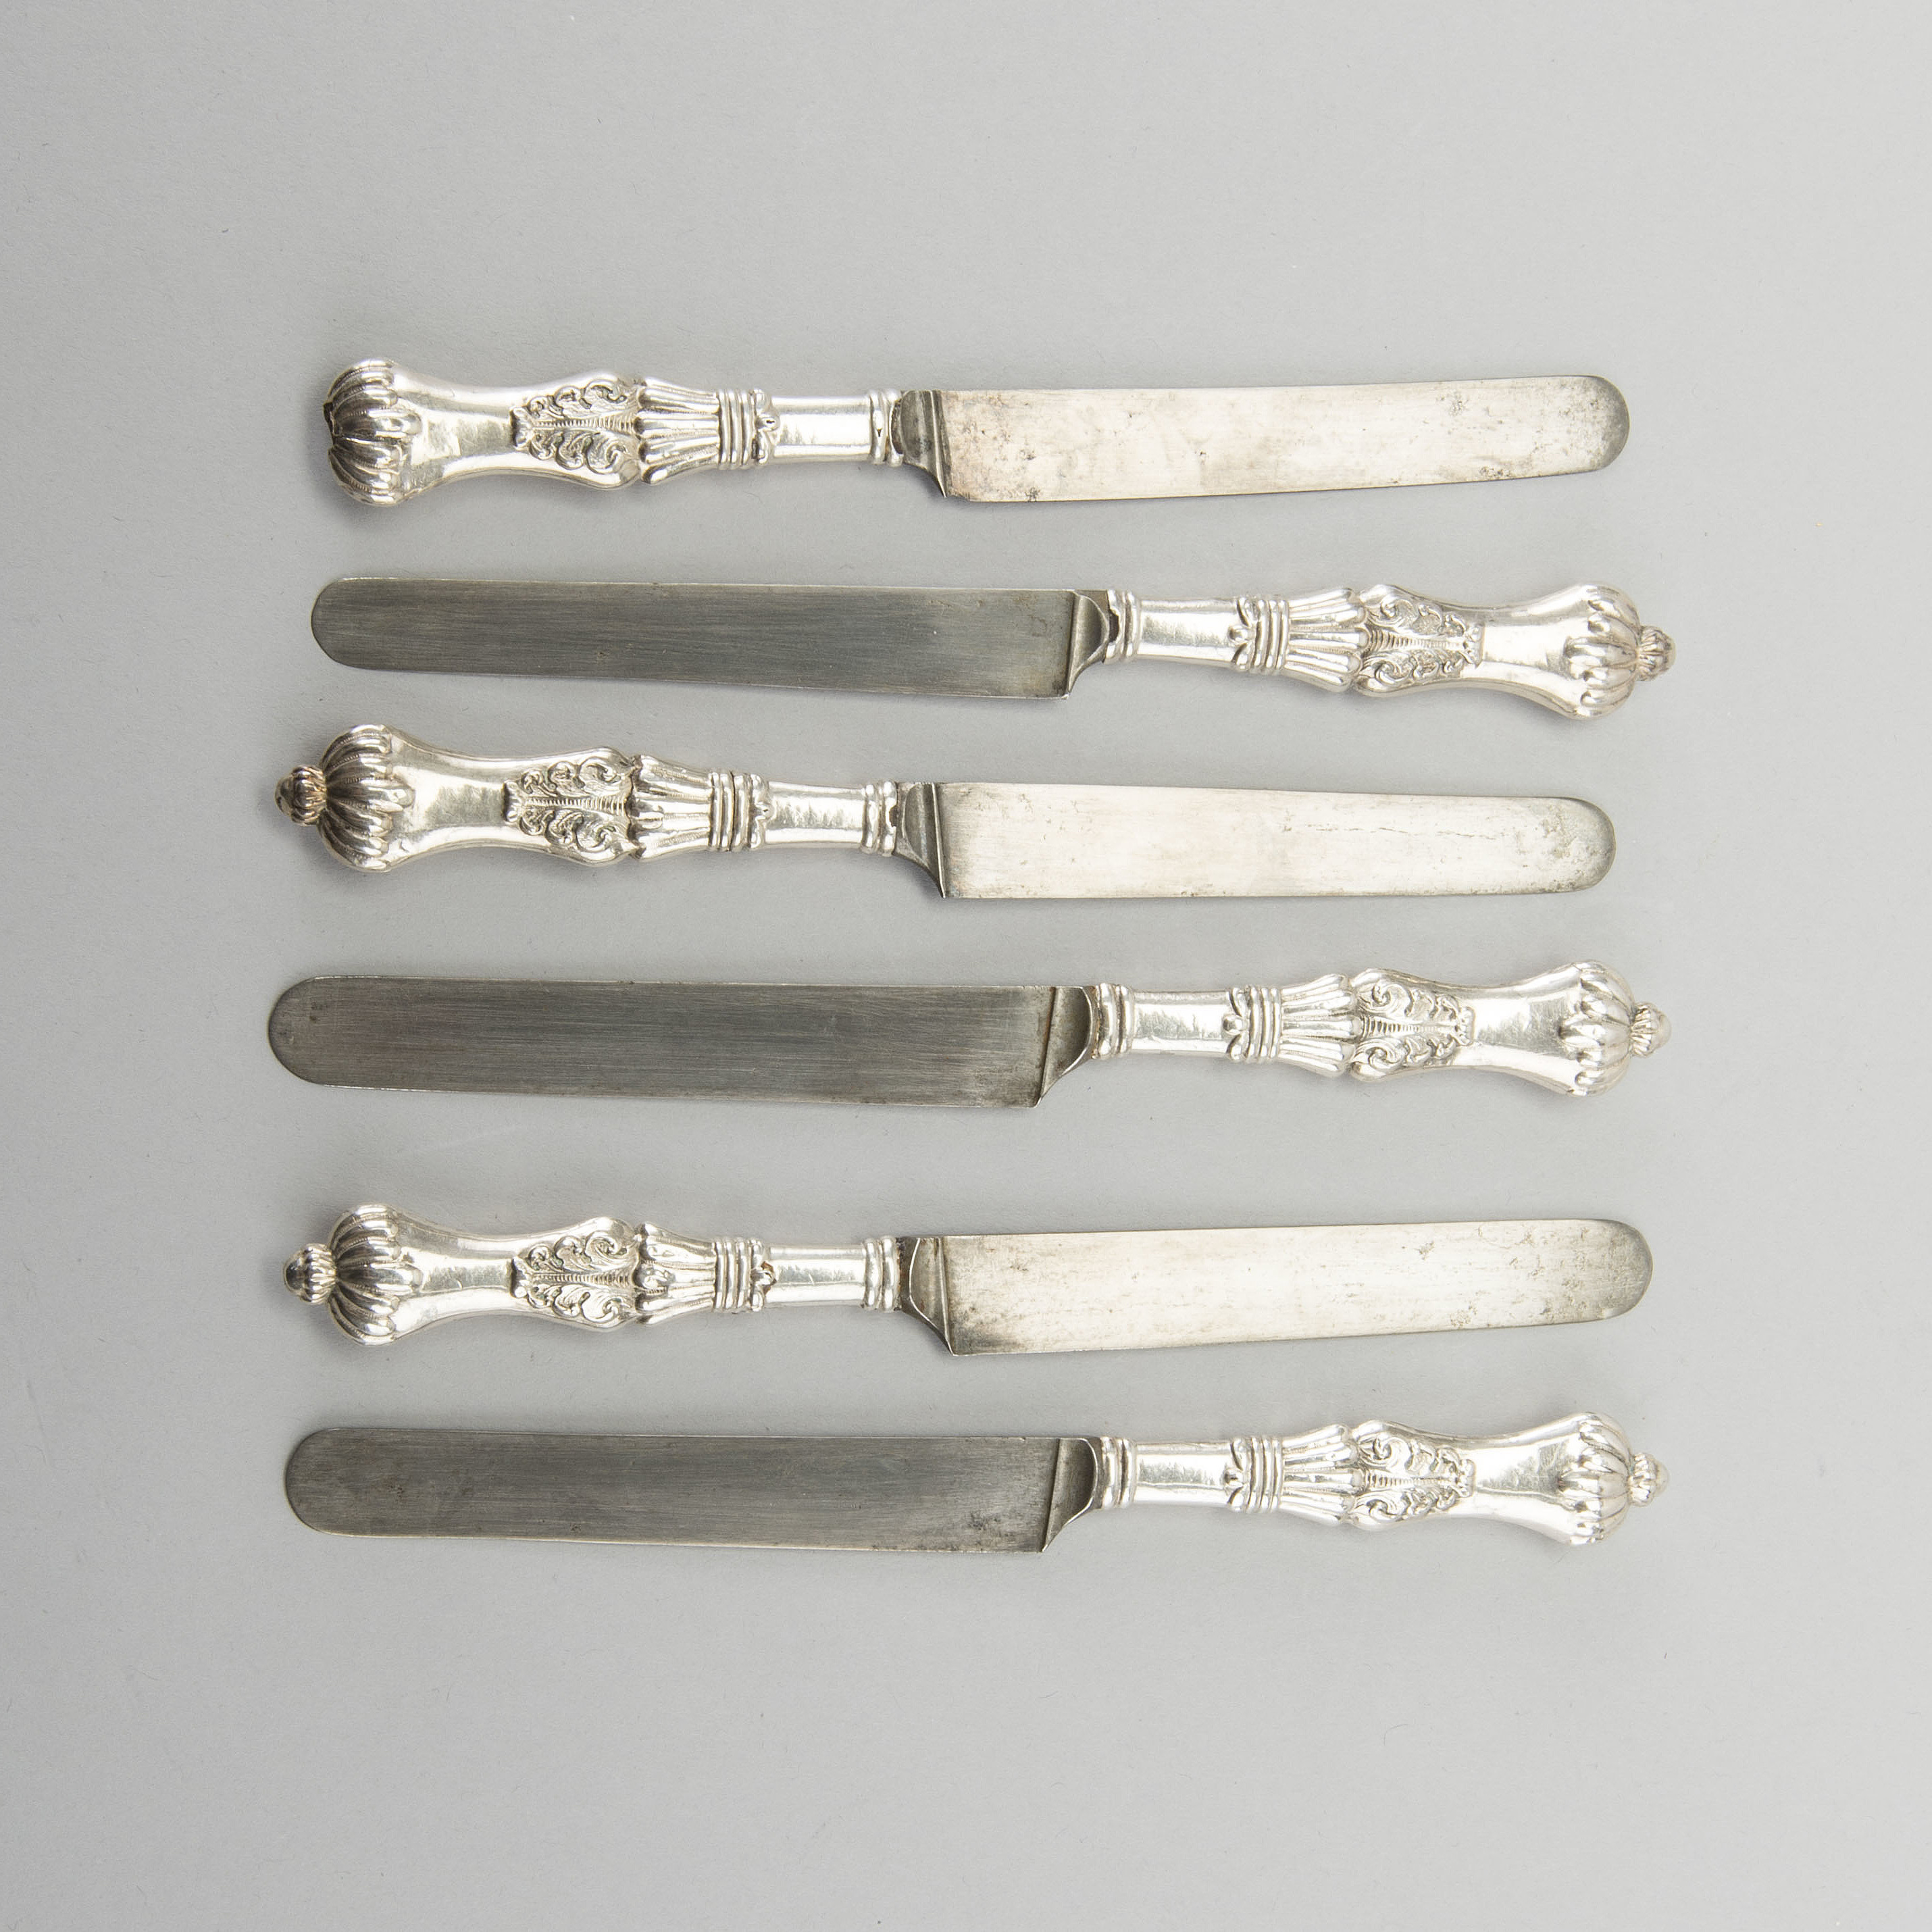 Eleven 19th century silver knifes  Total weight incl steel